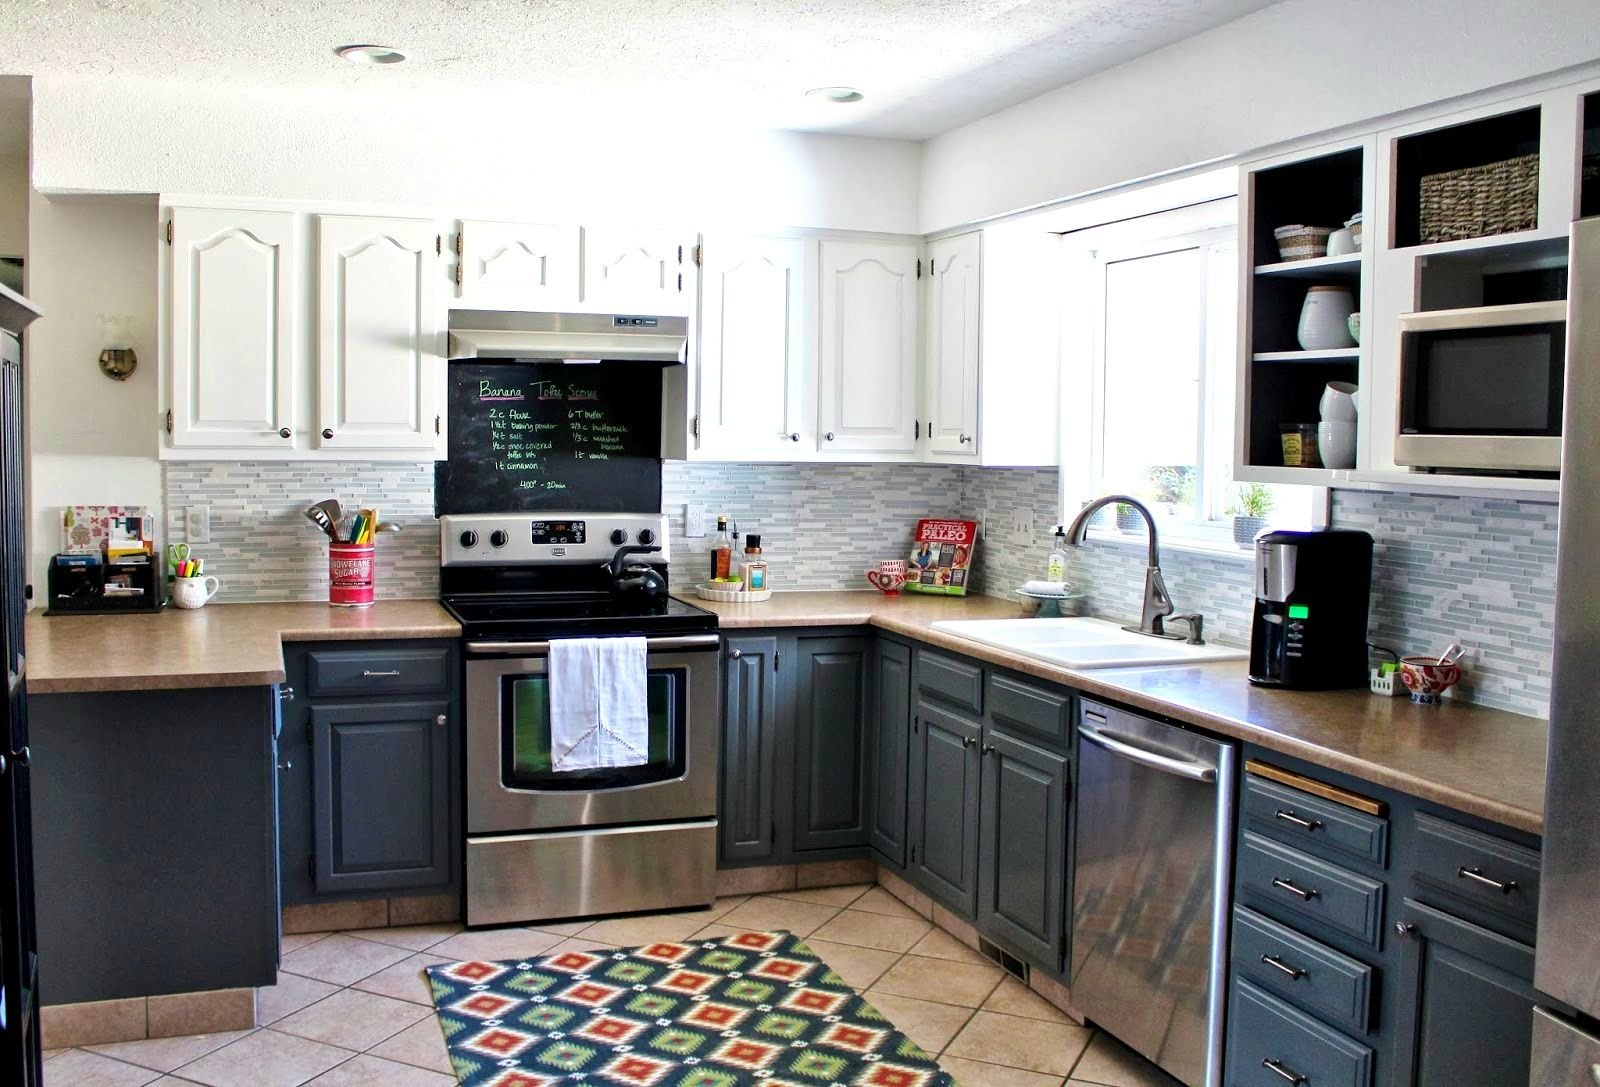 Apartments Amusing Ideas About Gray Kitchen Cabinets Slate Grey Aefdffecdcad White And Wood With B Gray And White Kitchen White Kitchen Makeover Kitchen Design